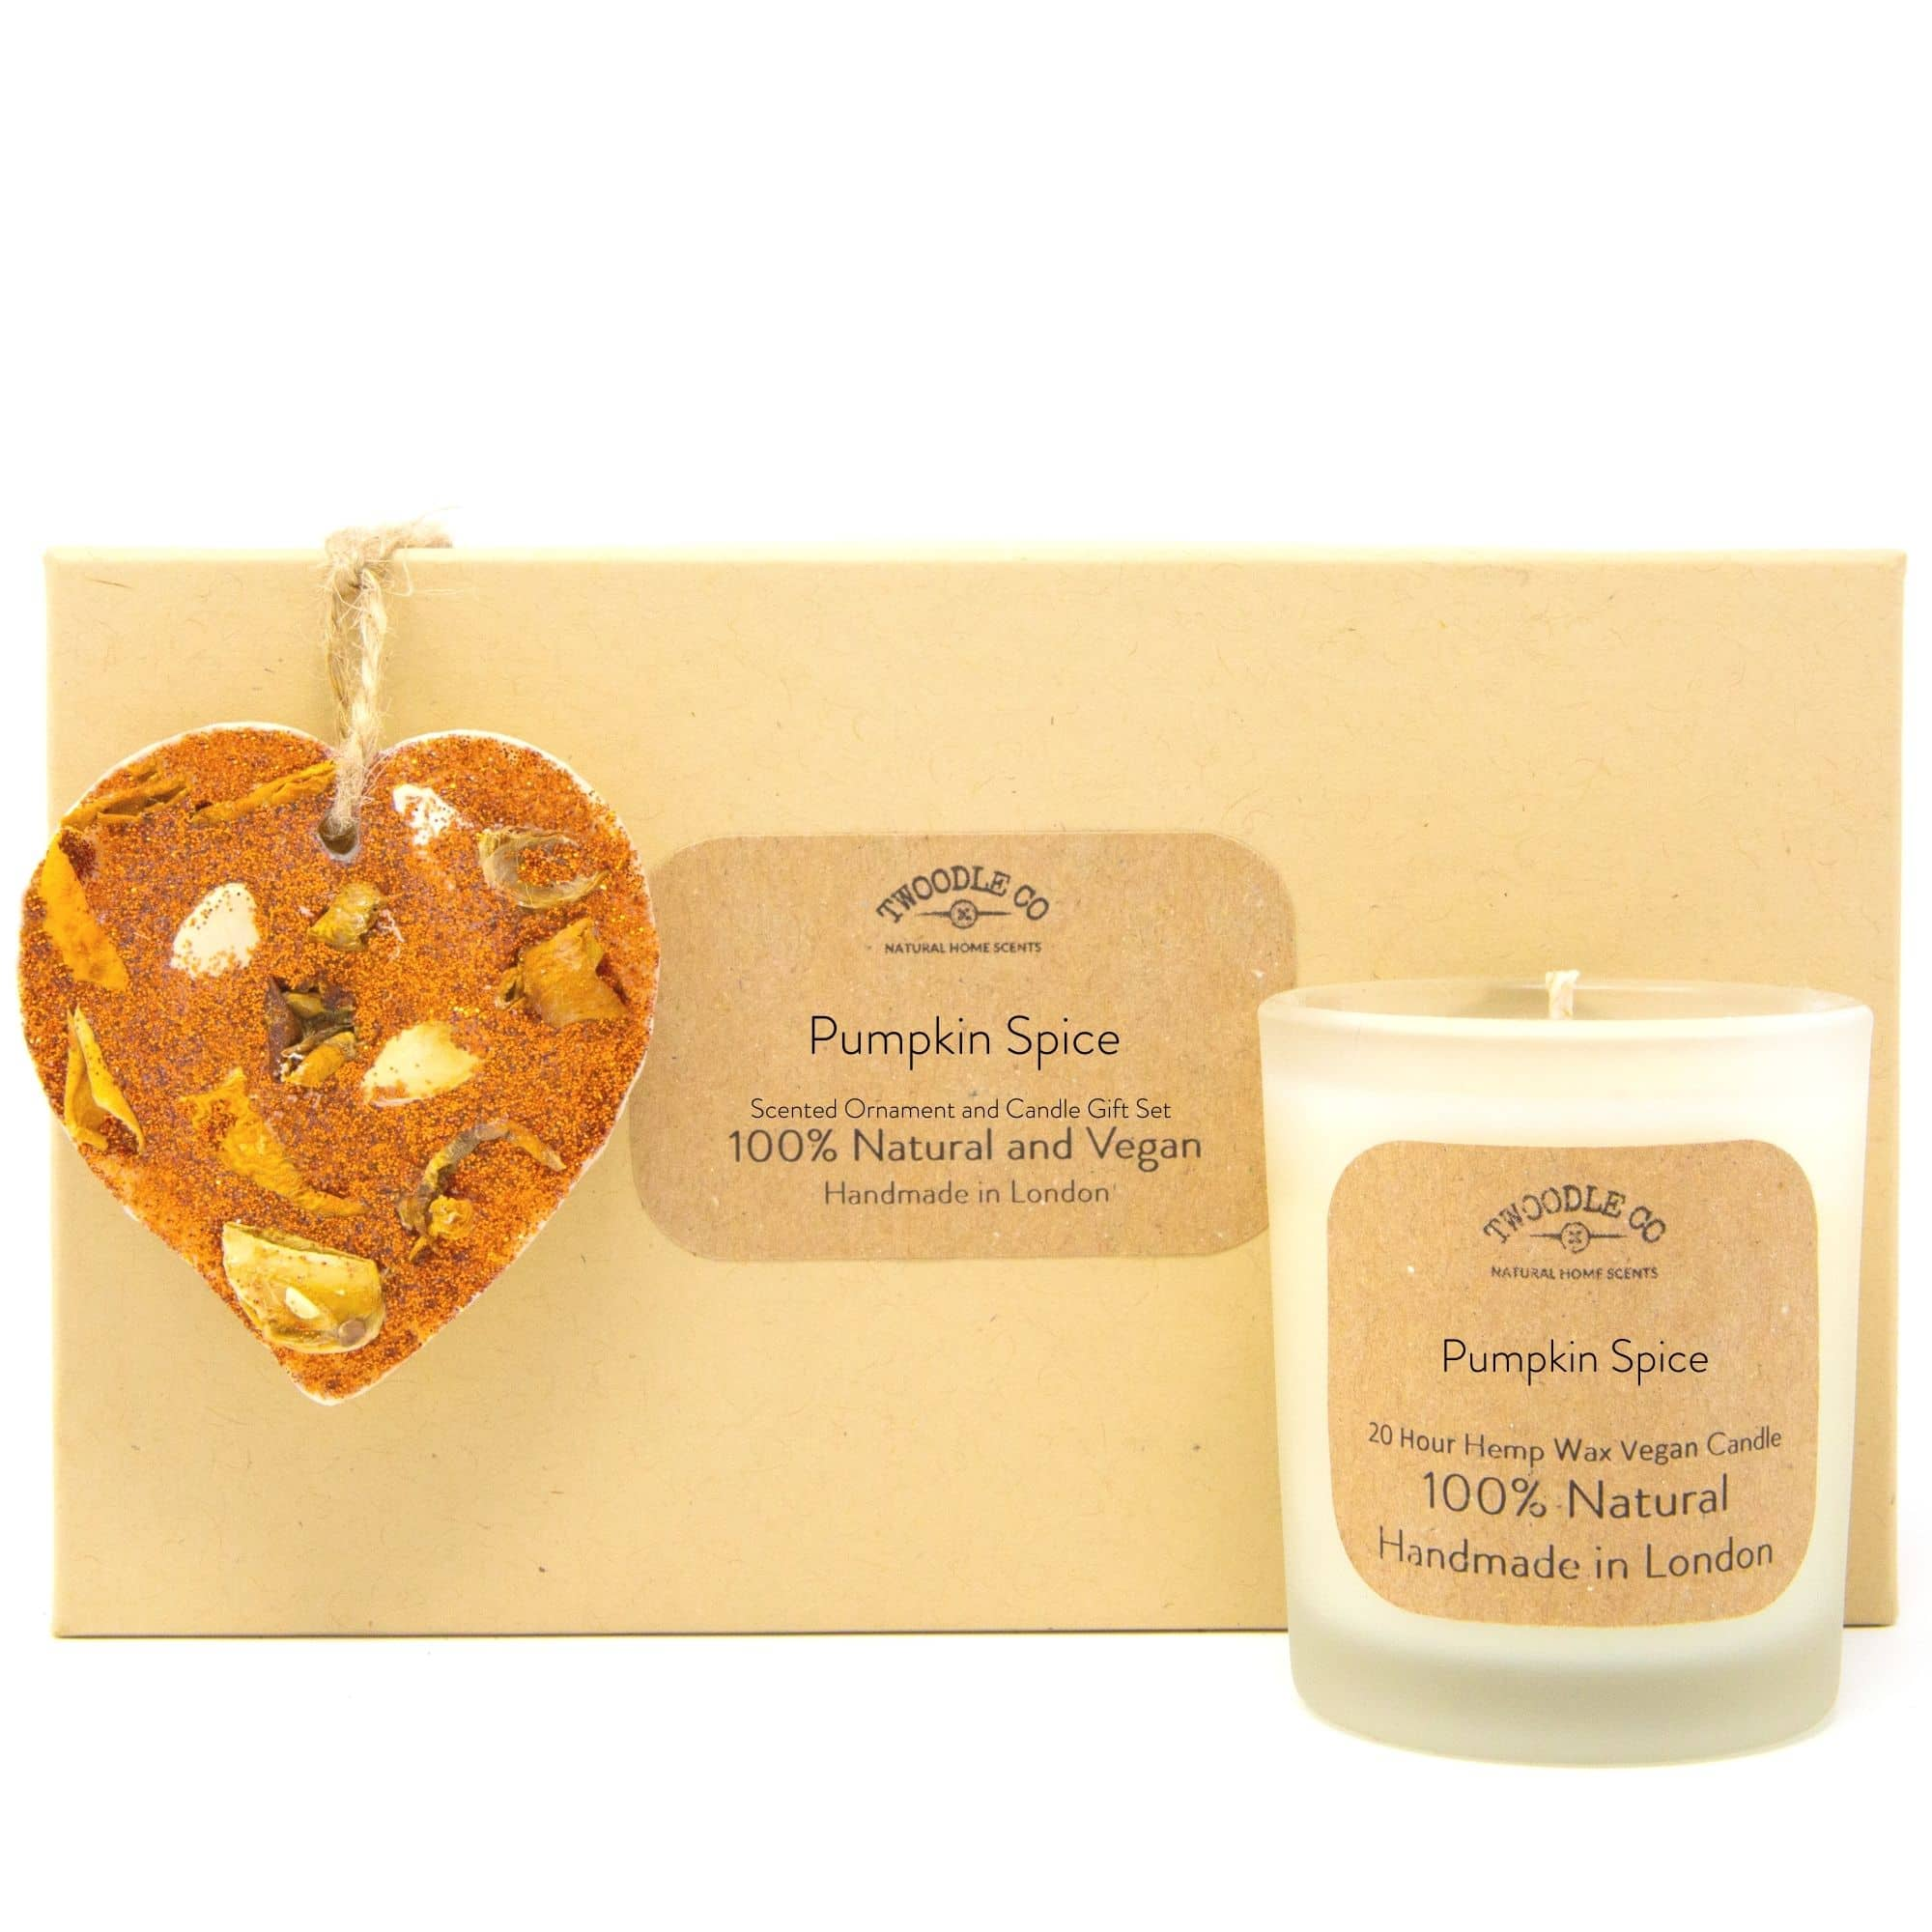 Pumpkin Spice | Scented Ornament and Candle Gift Set